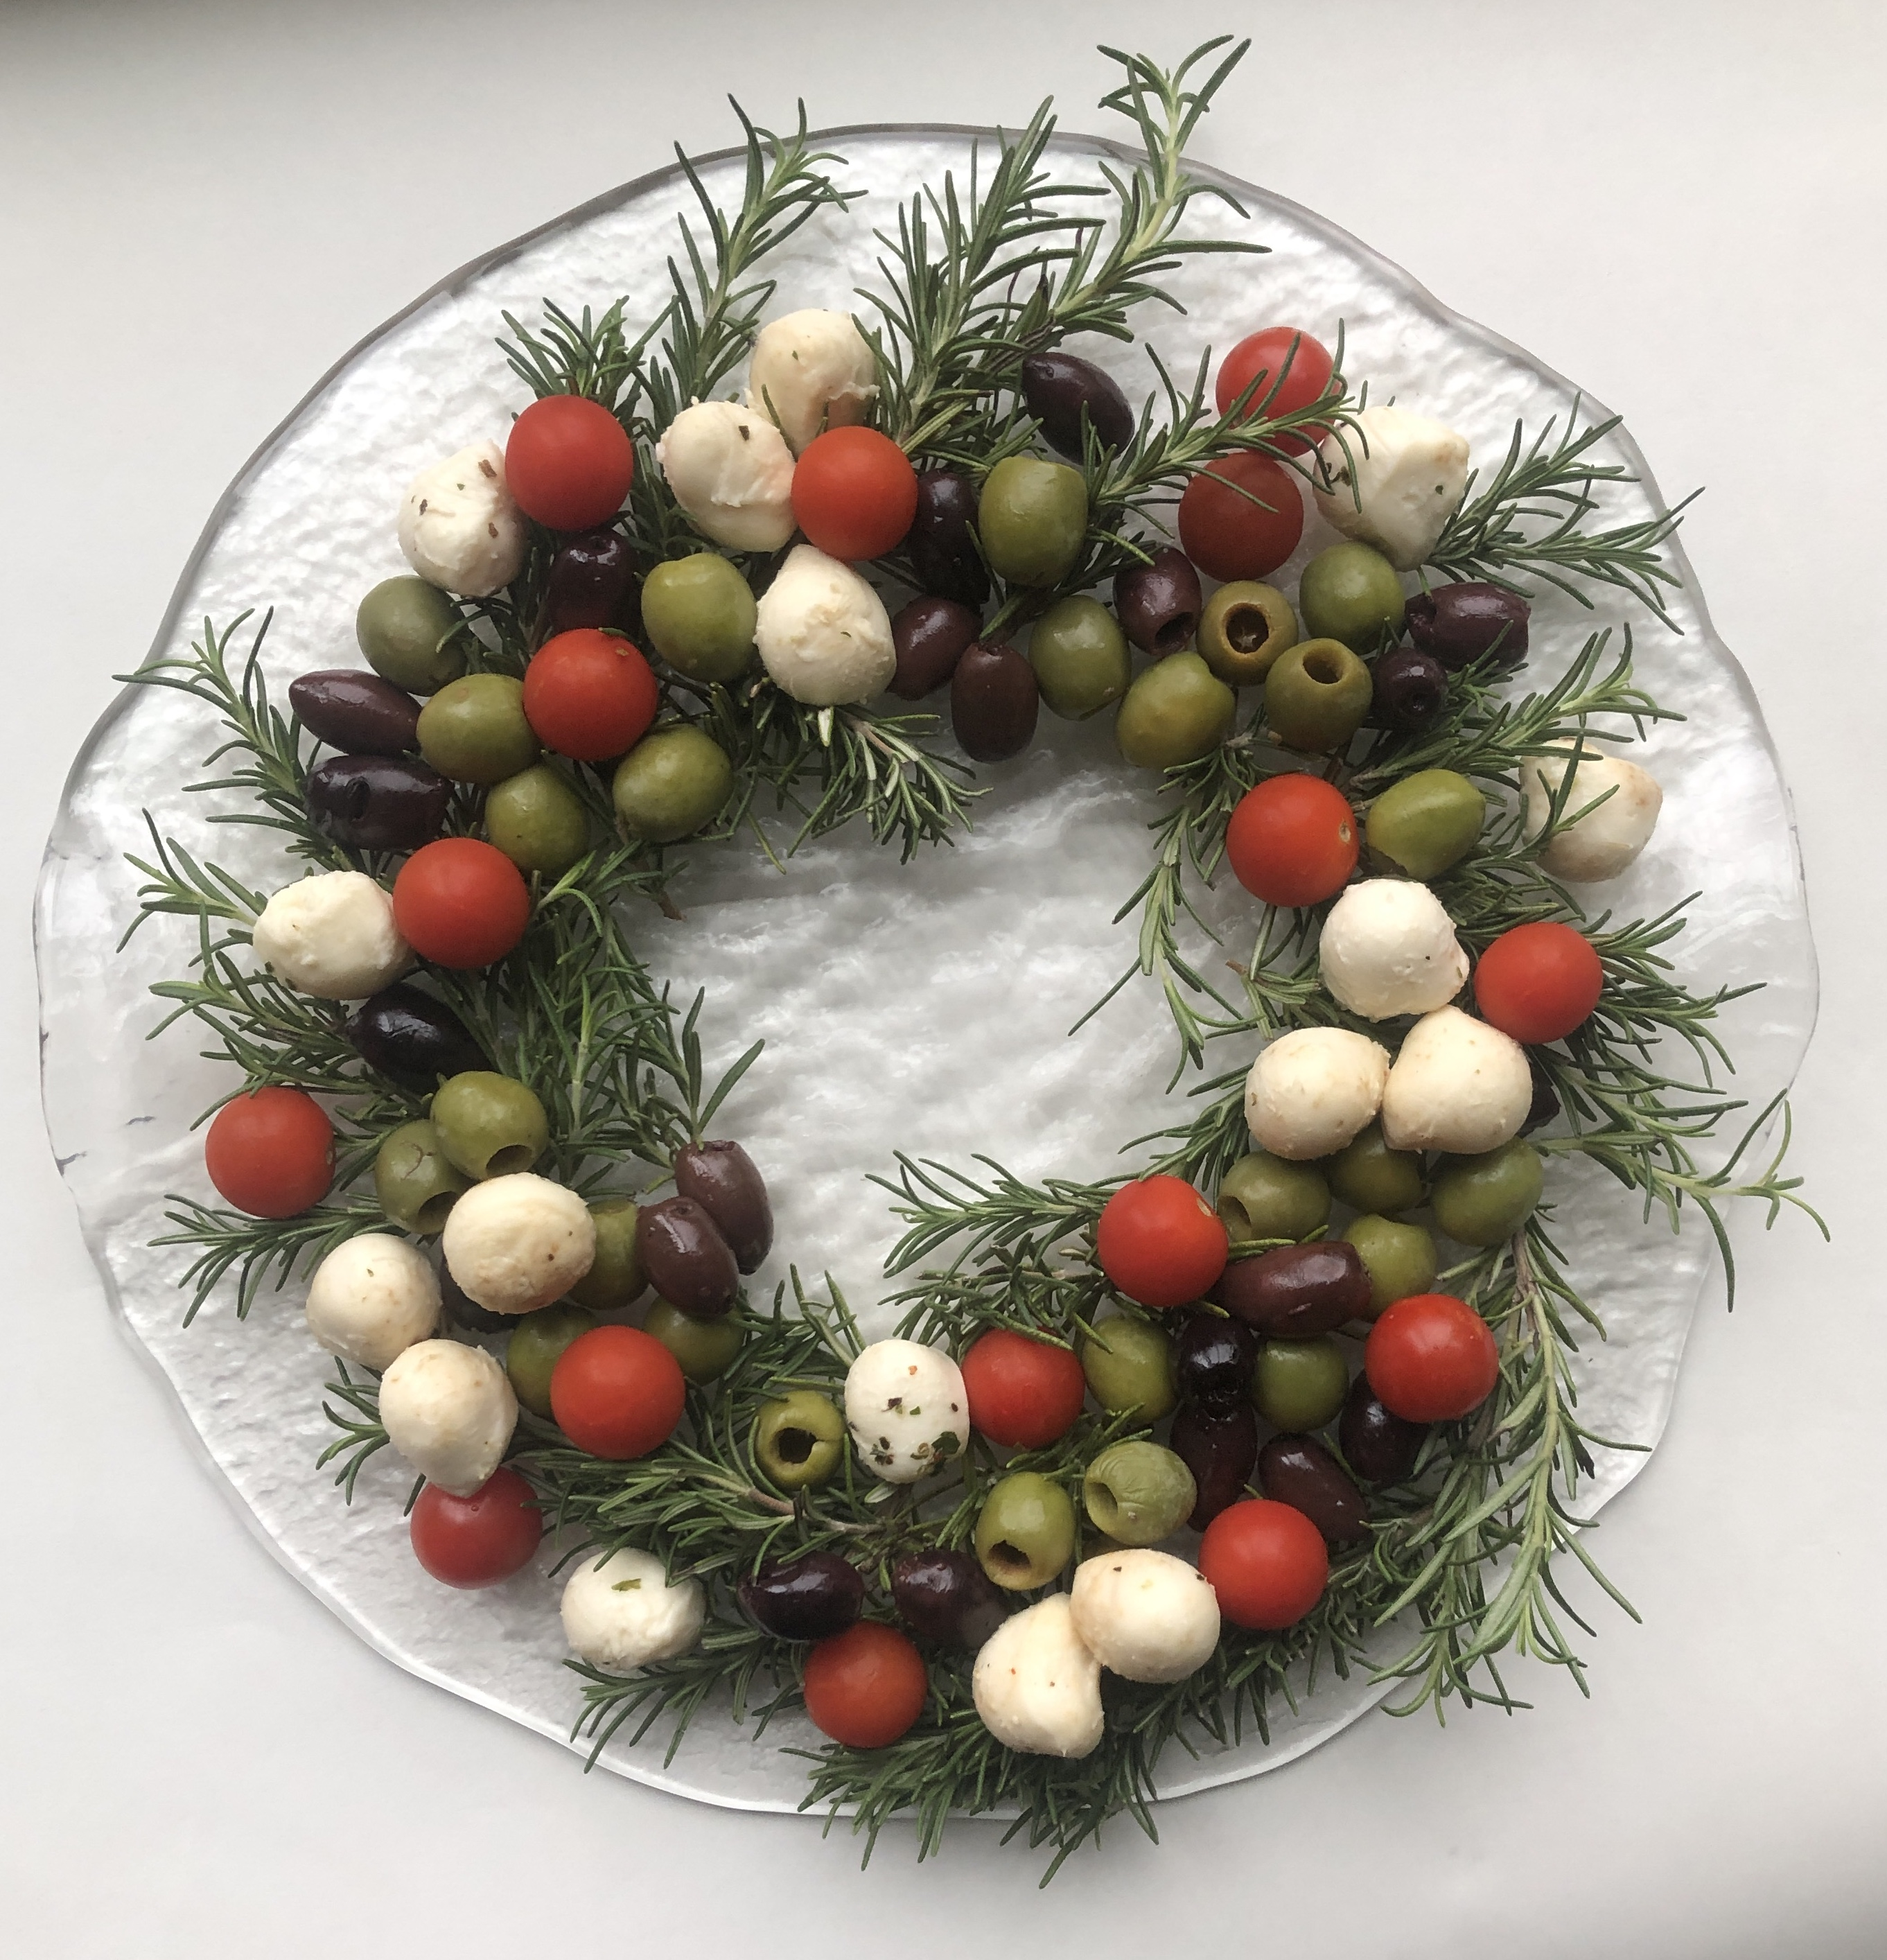 Festive Olive and Cheese Appetizer